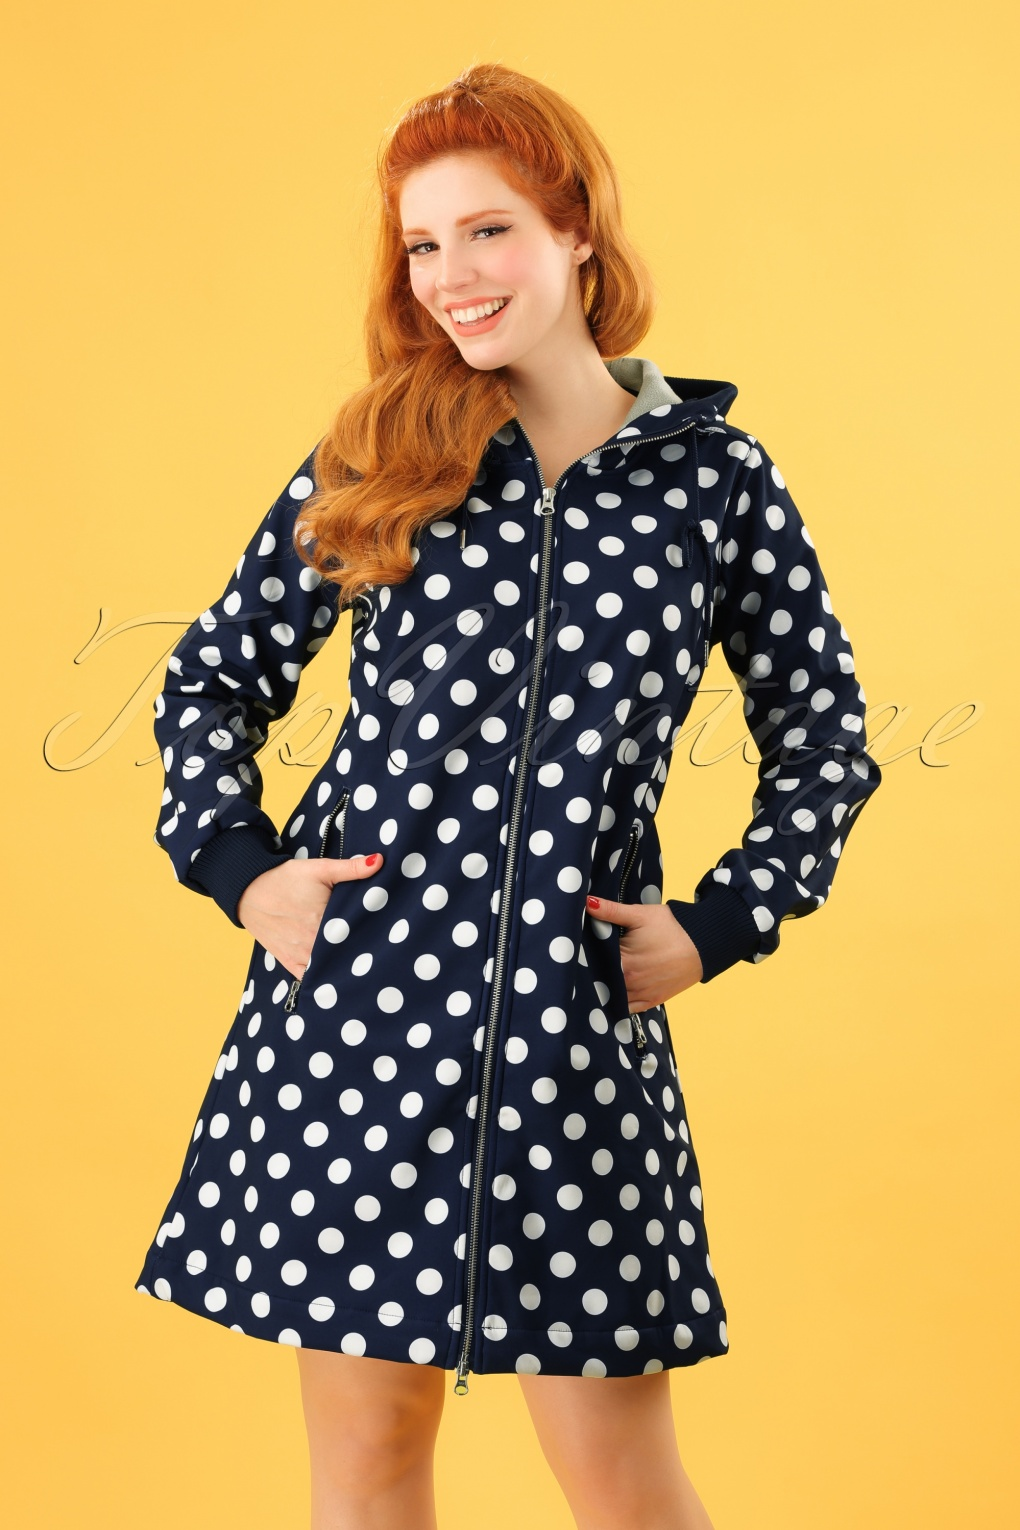 Vintage Coats & Jackets | Retro Coats and Jackets 60s Jane Softshell Polkadot Coat in Navy and White £143.65 AT vintagedancer.com